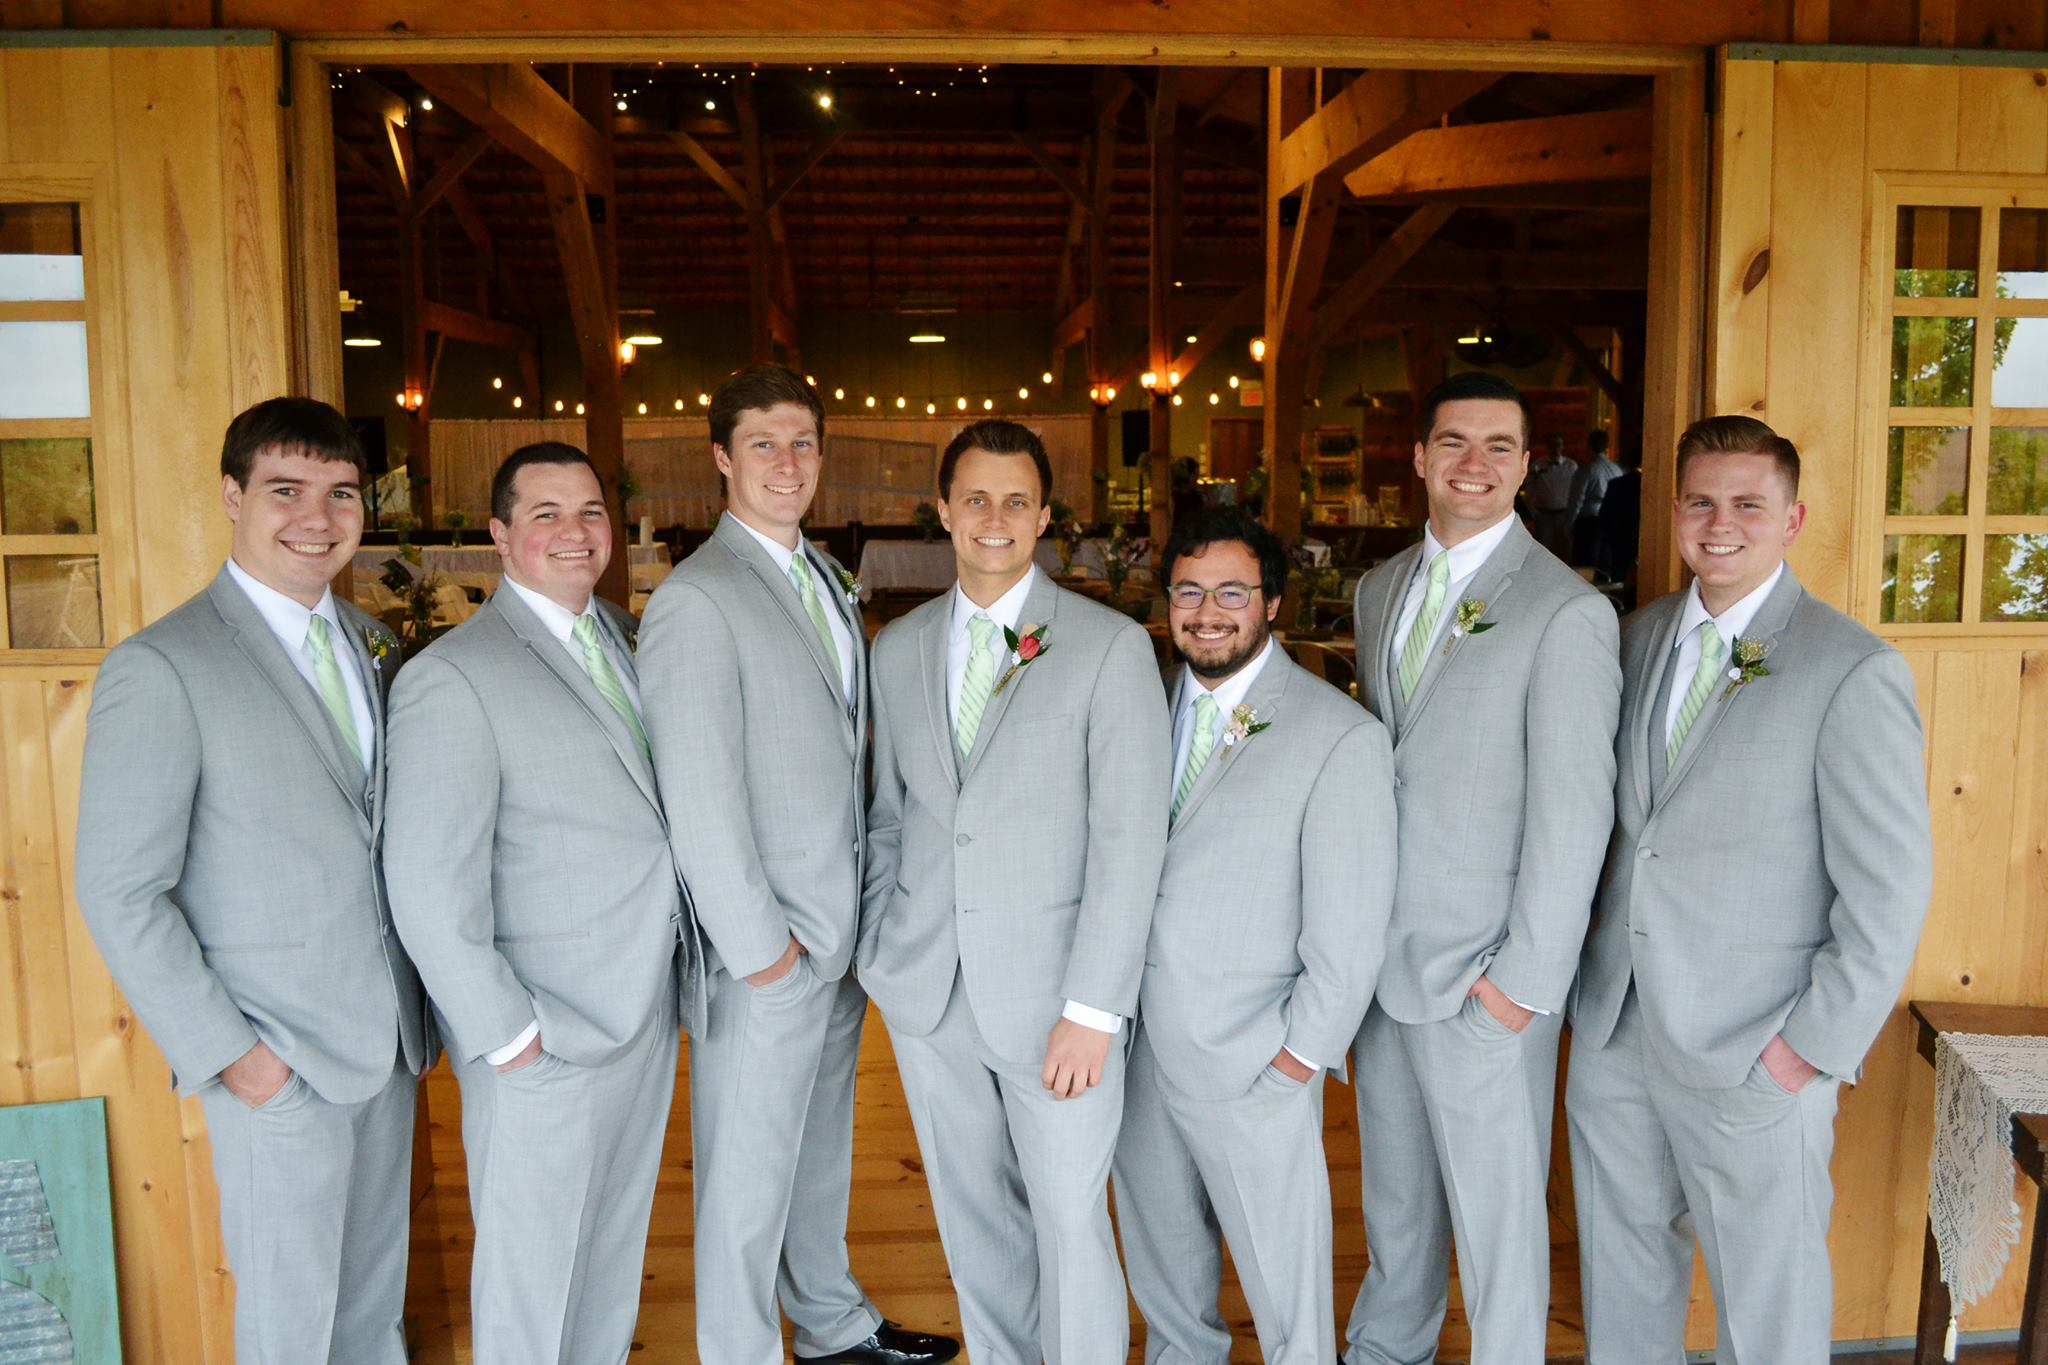 1 - Wedding - The Guys